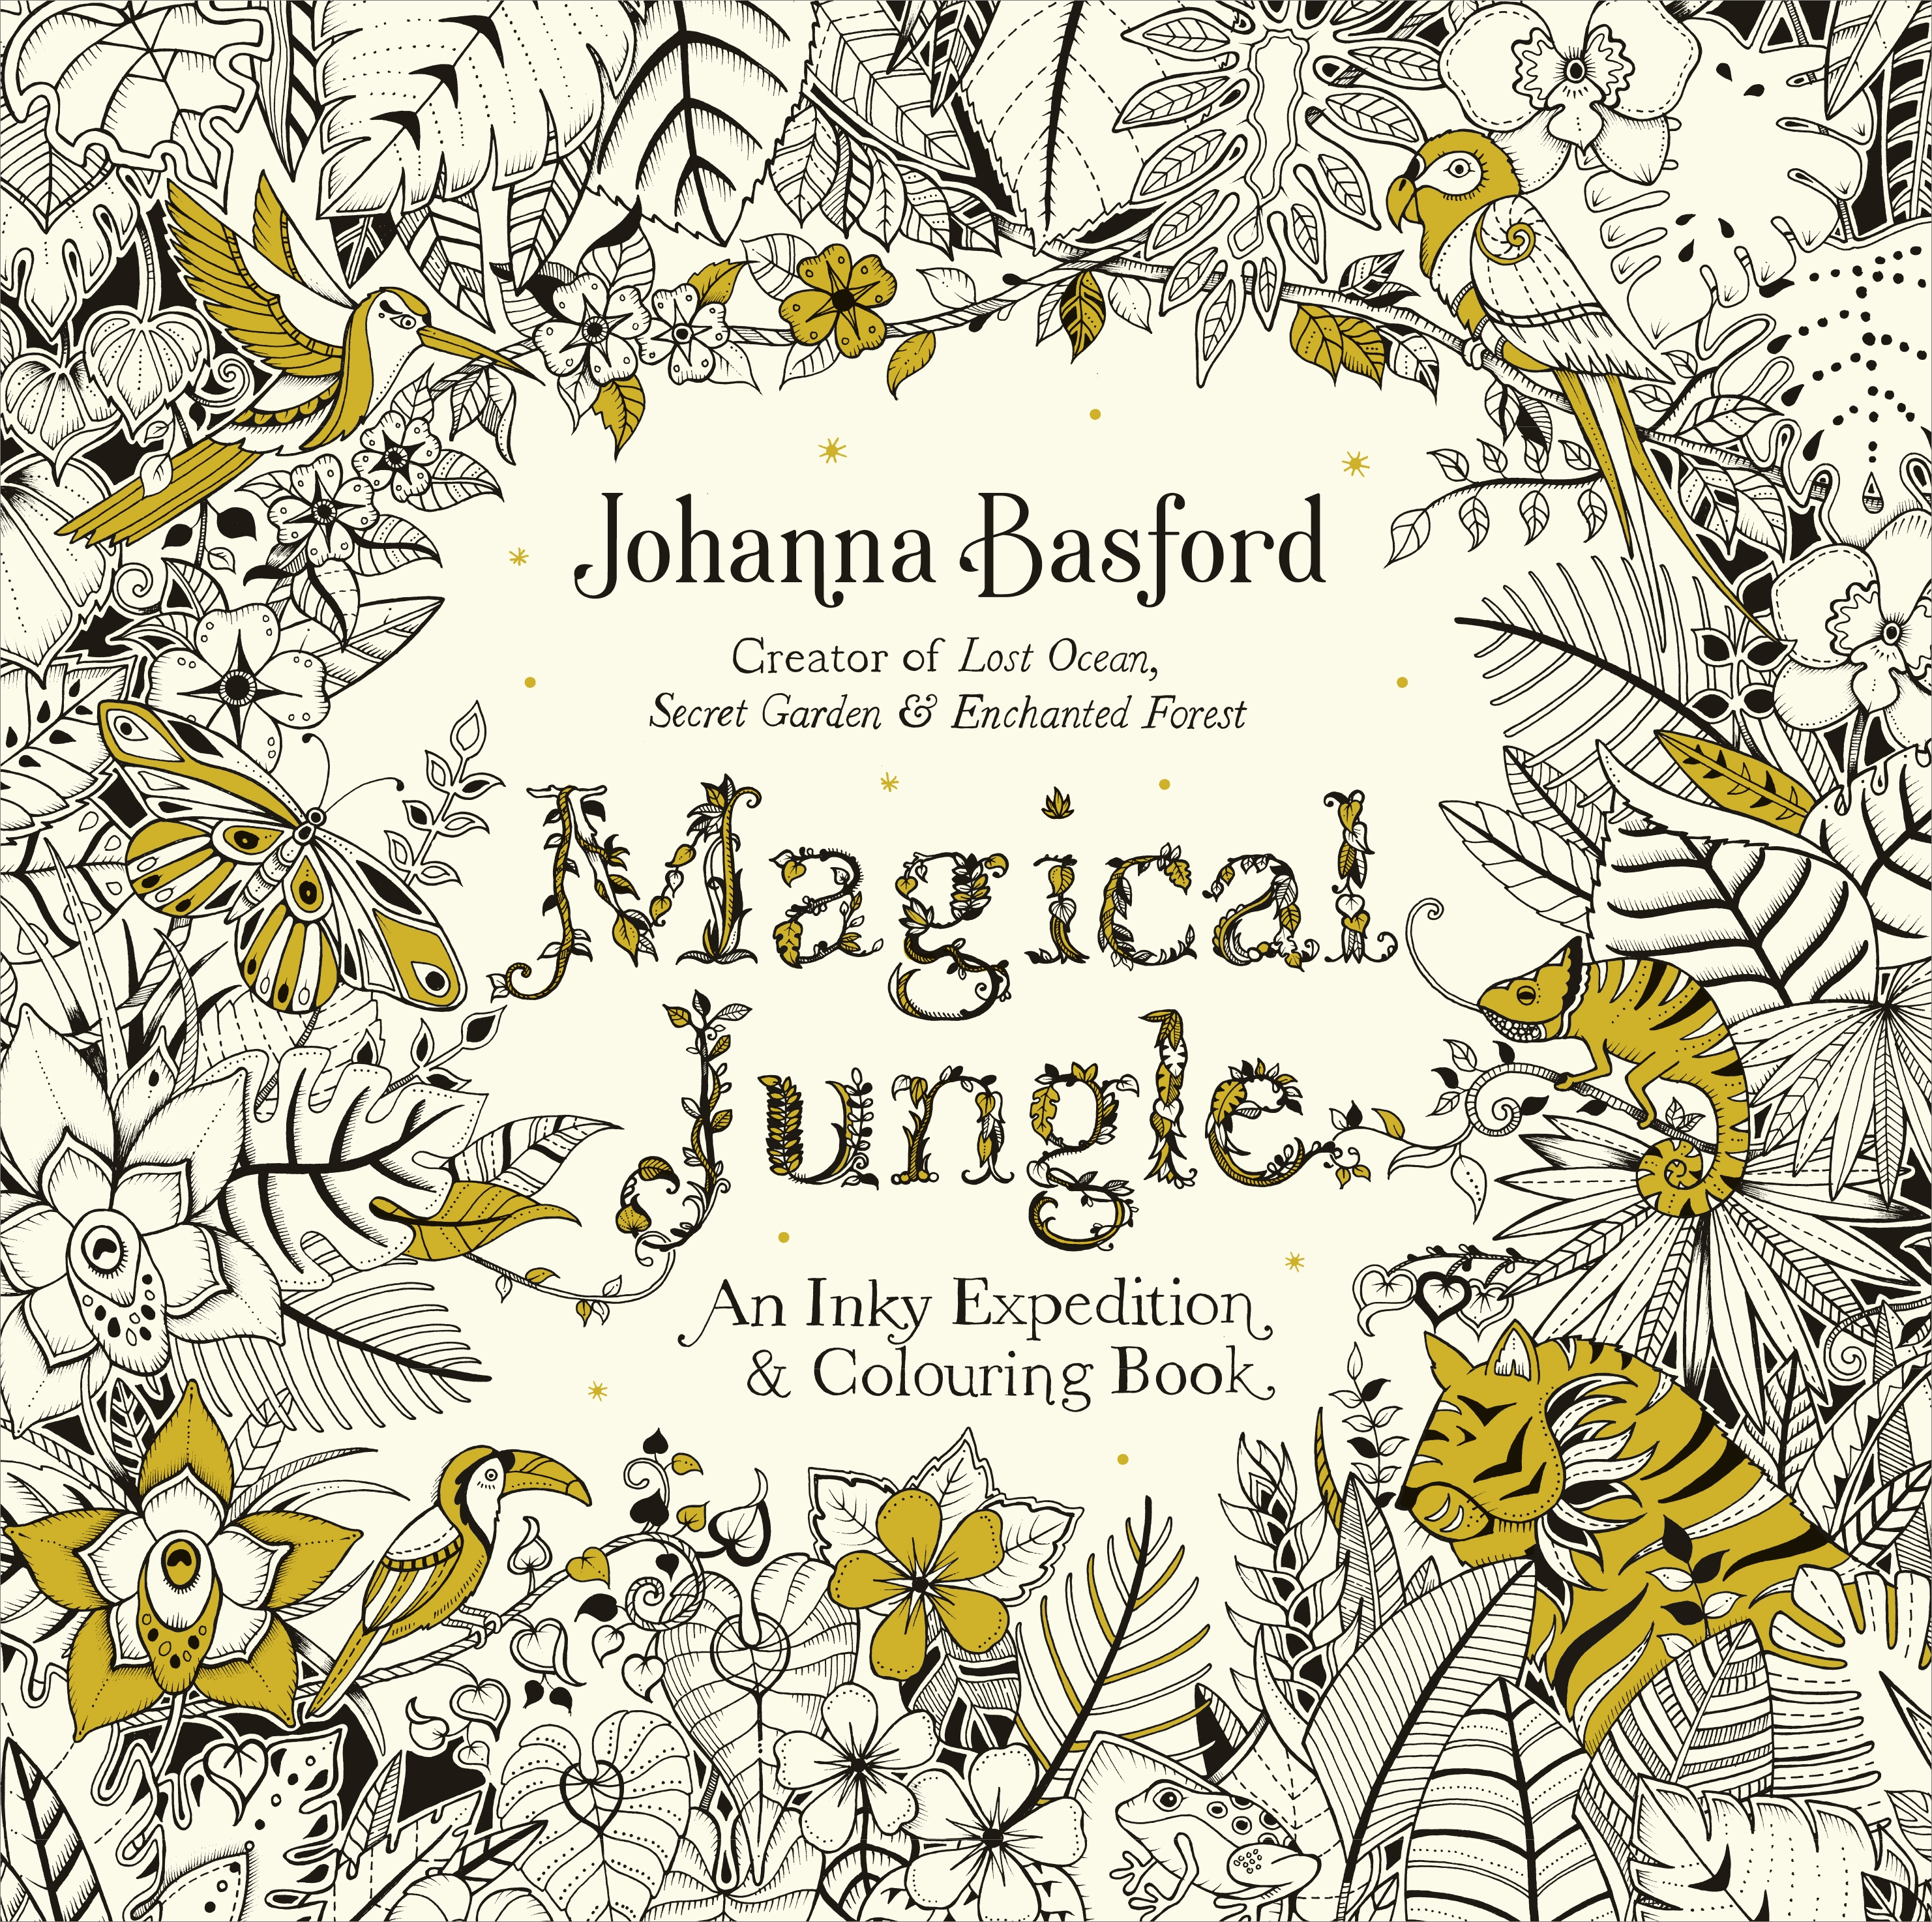 Forbidden Jungle: An Inky Expedition and Colouring Book by Johanna Basford, ISBN: 9780753557167